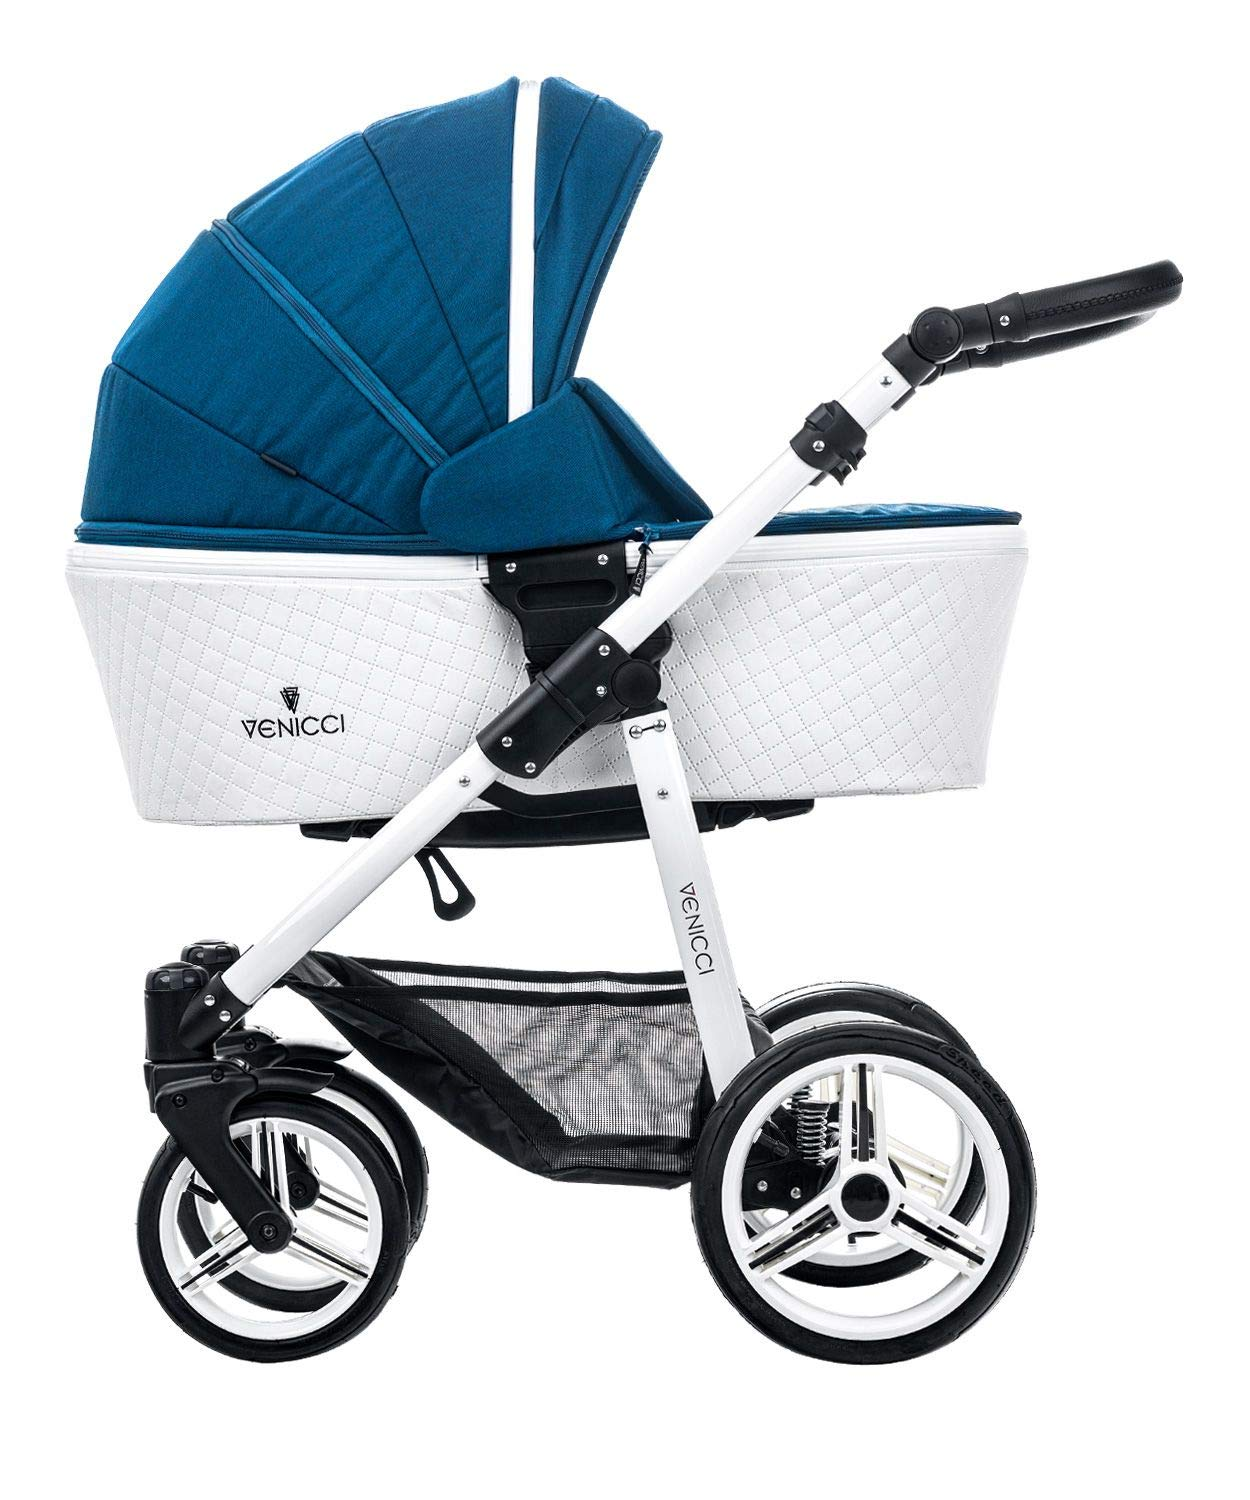 Venicci Pure 2-in-1 Travel System - Ocean Blue - with Carrycot + Changing Bag + Apron + Raincover + Mosquito Net + 5-Point Harness and UV 50+ Fabric + Cup Holder Venicci 2-in-1 Pram and Pushchair with custom travel options Suitable for your baby from birth until approximately 36 months 5-point harness to enhance the safety of your child 2